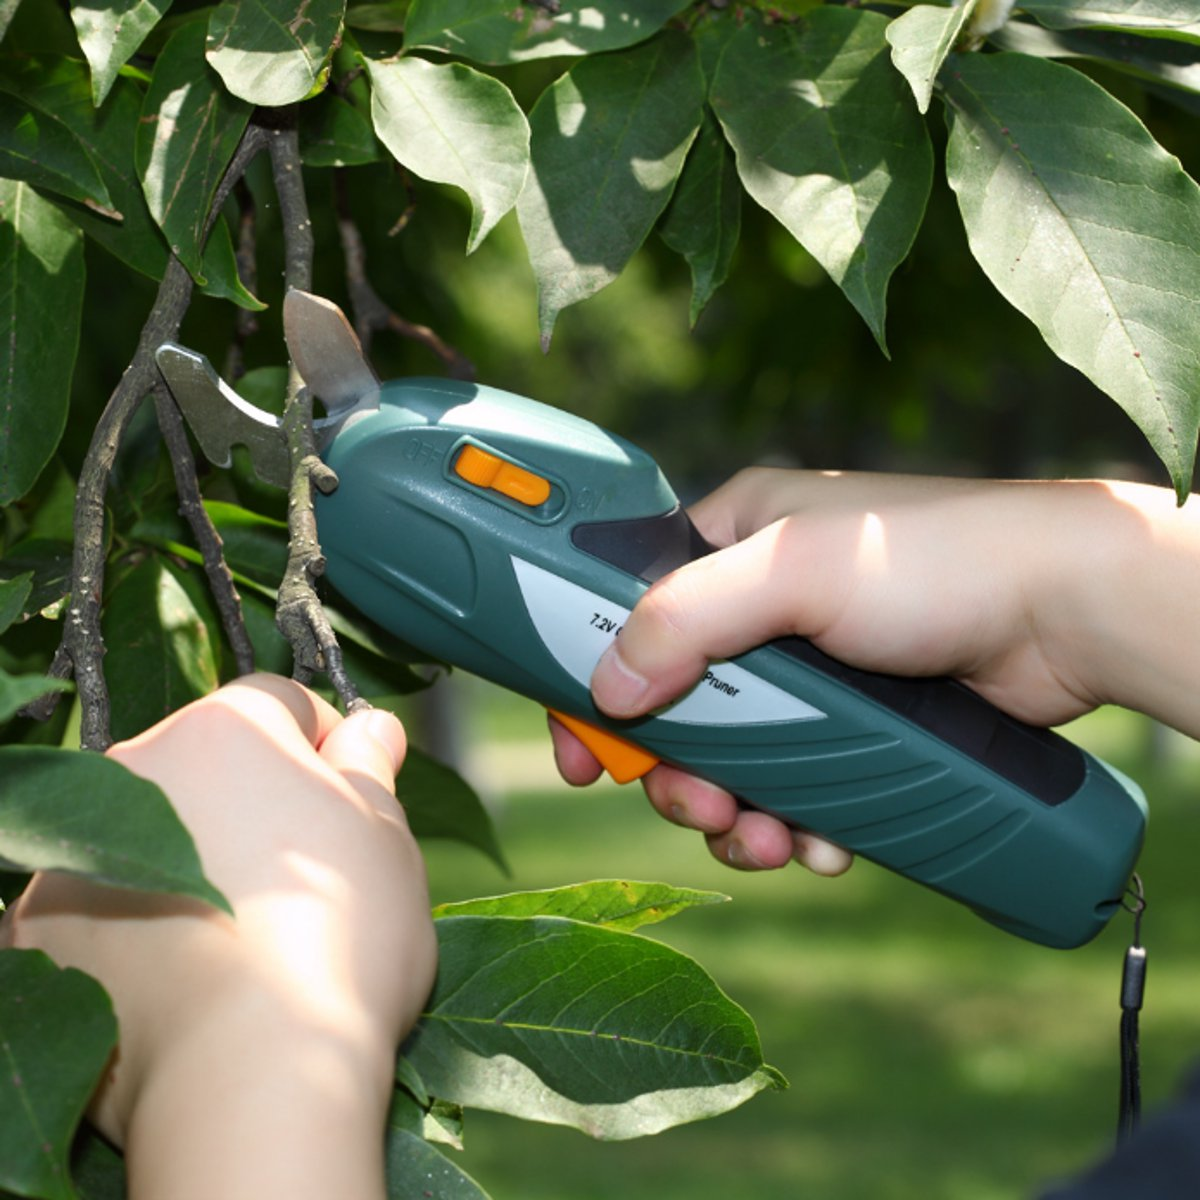 7.2V Rechargeable Garden Fruit Tree Cutter Pro Battery Pruning Shears Cutting Tools